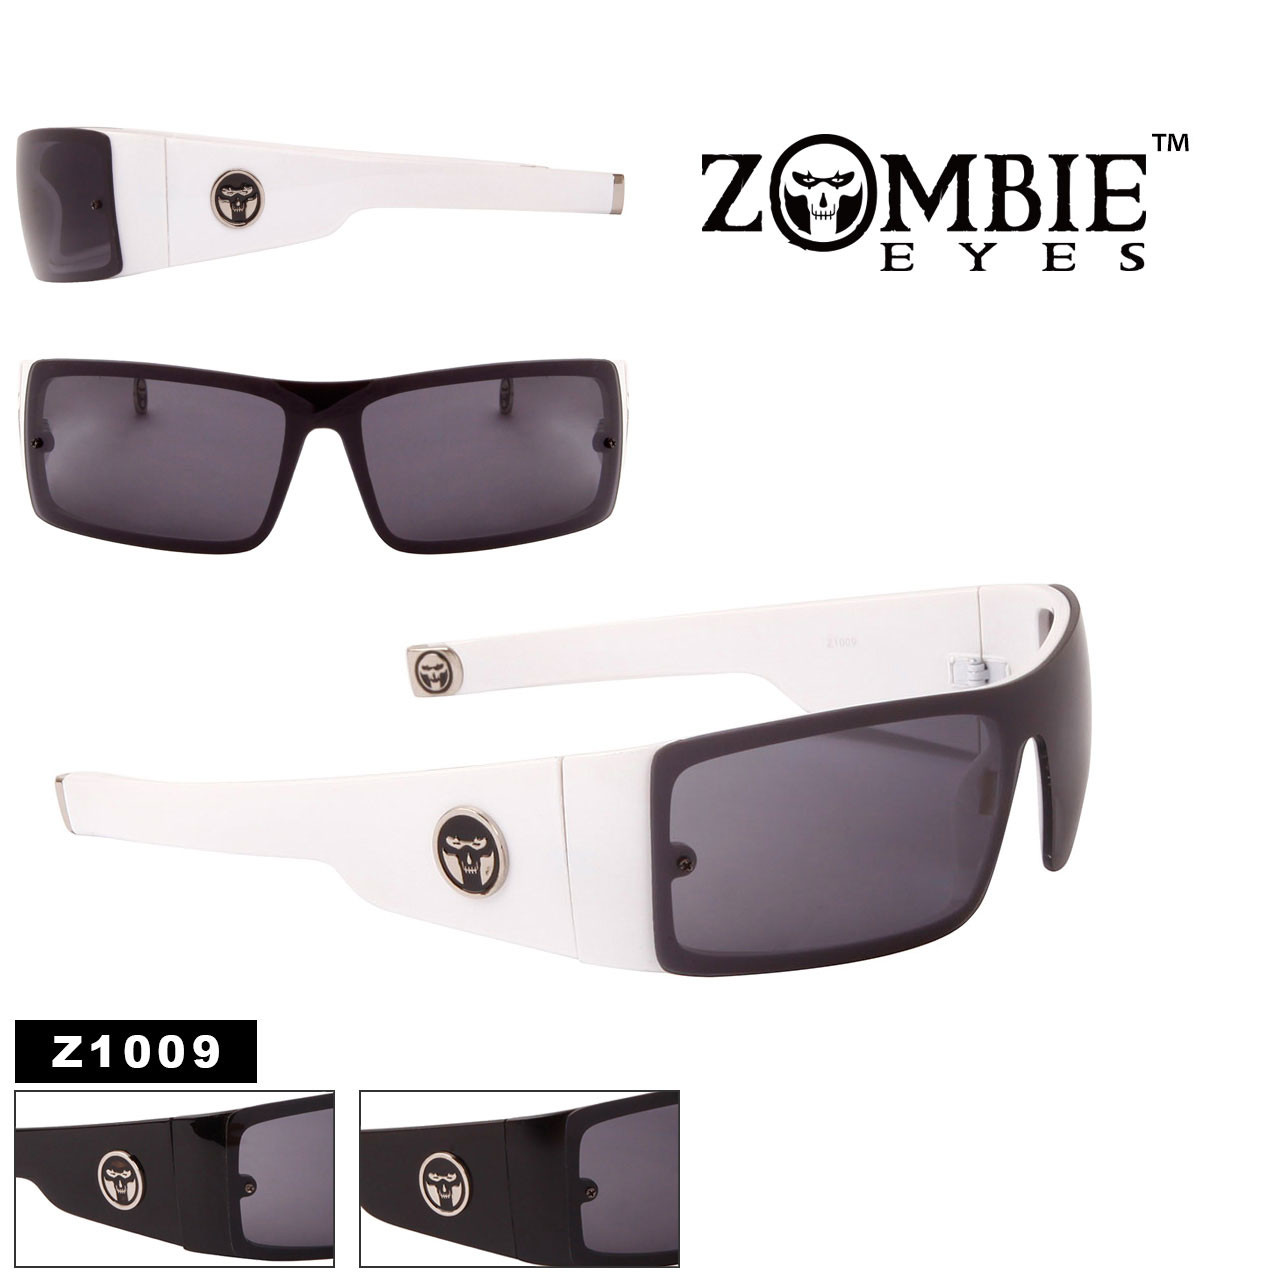 Zombie Eyes™ Designer Sunglasses for Men - Style #Z1009